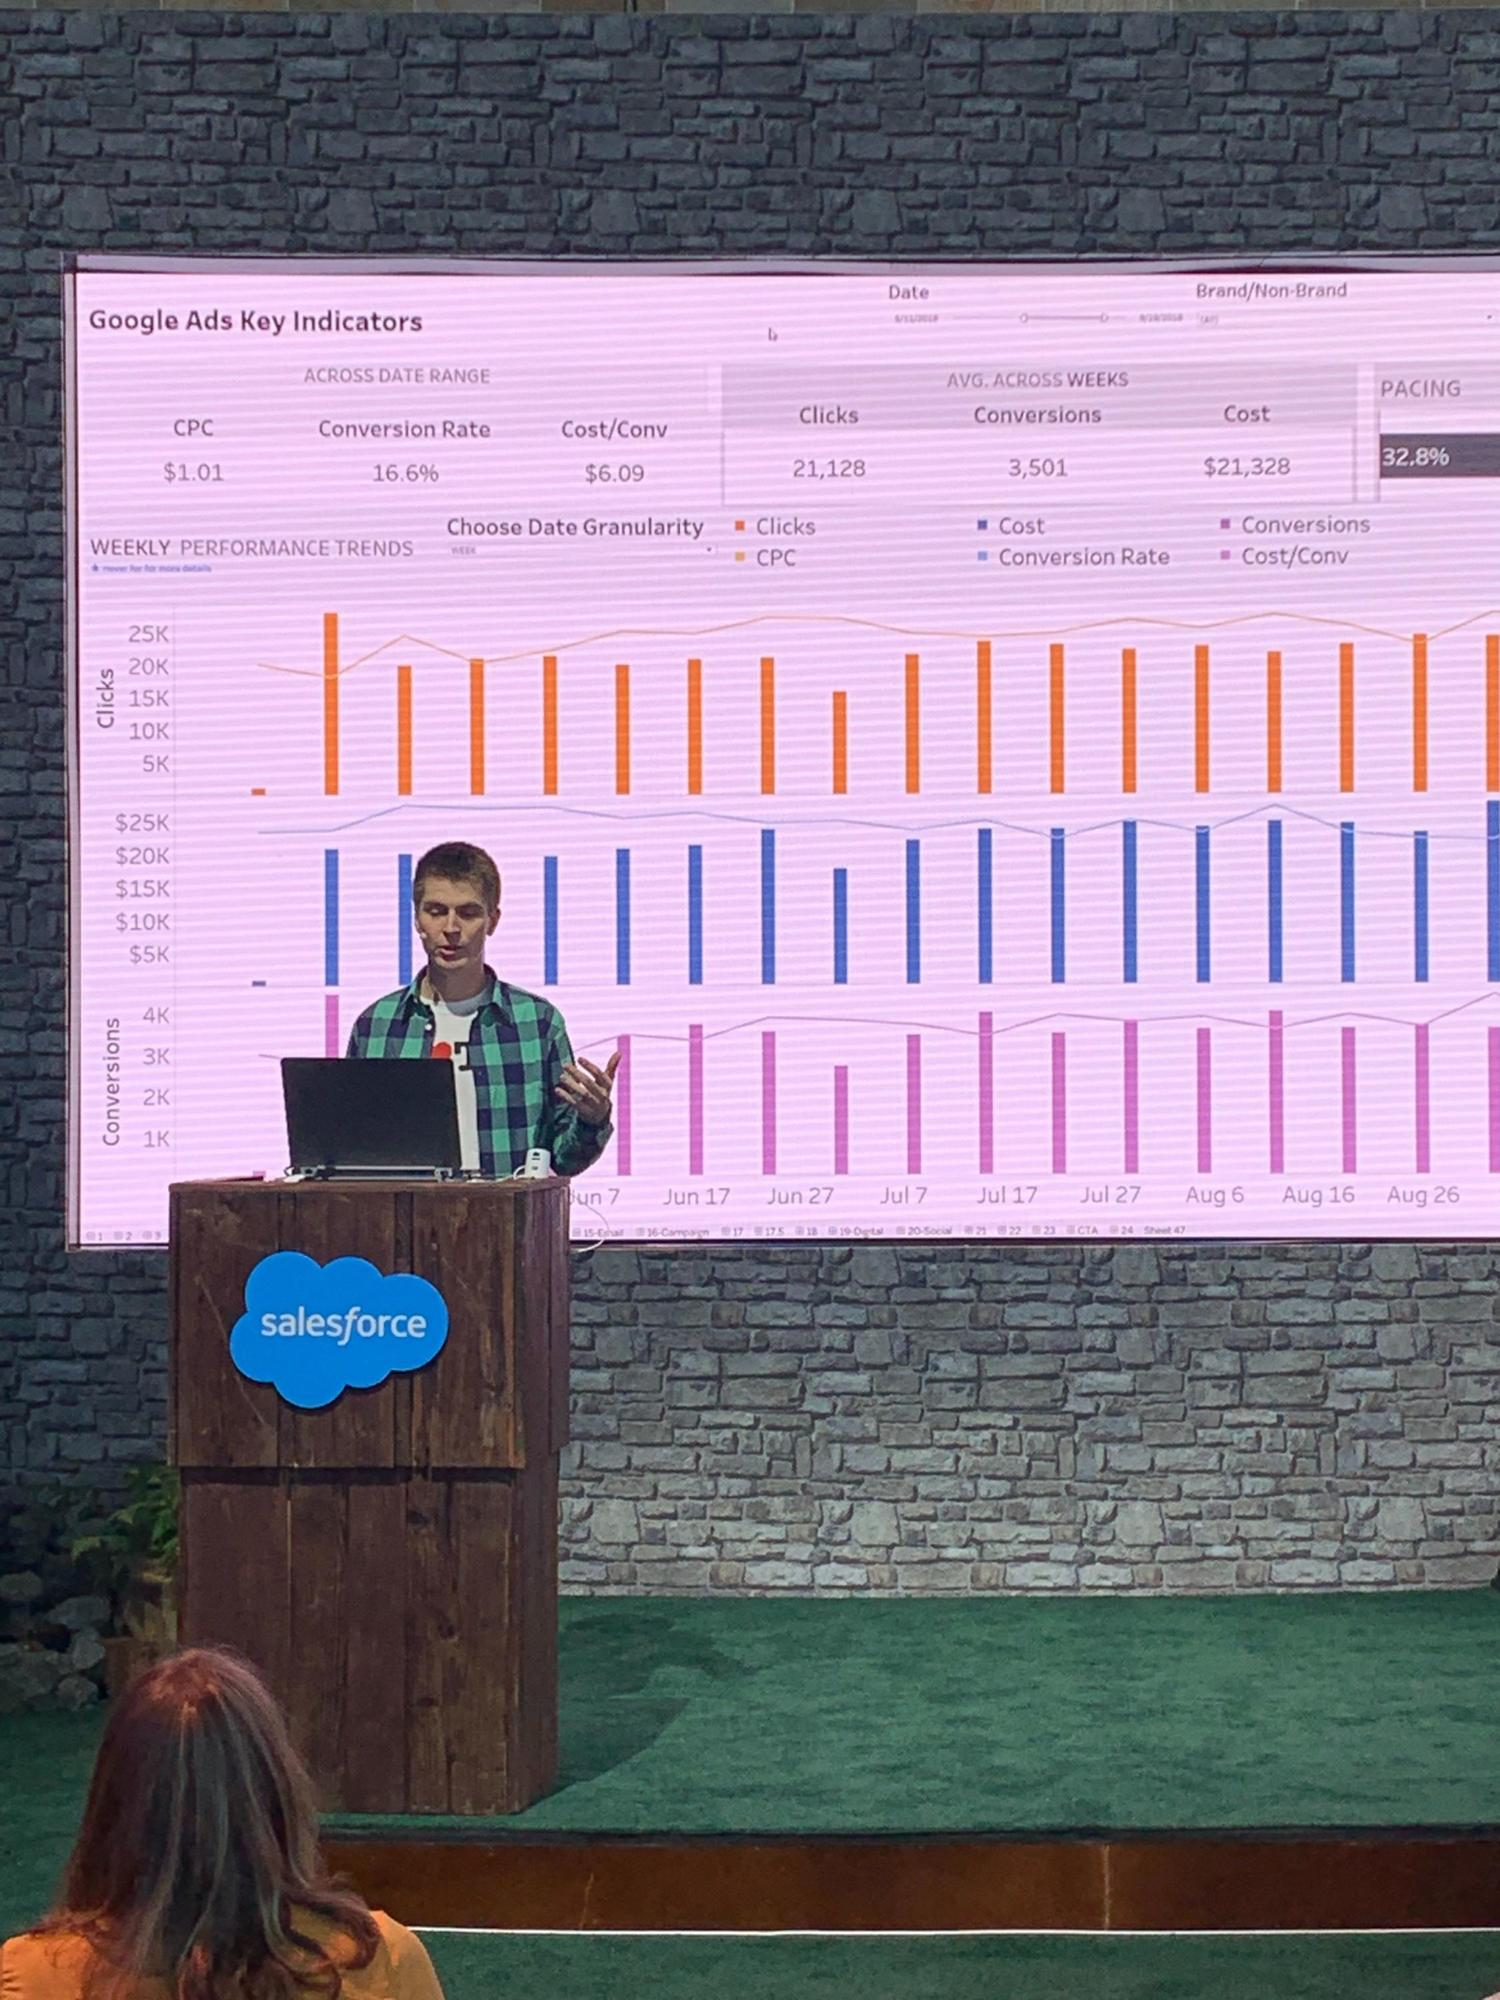 Man standing at a podium with the Salesforce blue cloud logo in front of a giant screen showing a dashboard of Google Ads Key Indicators